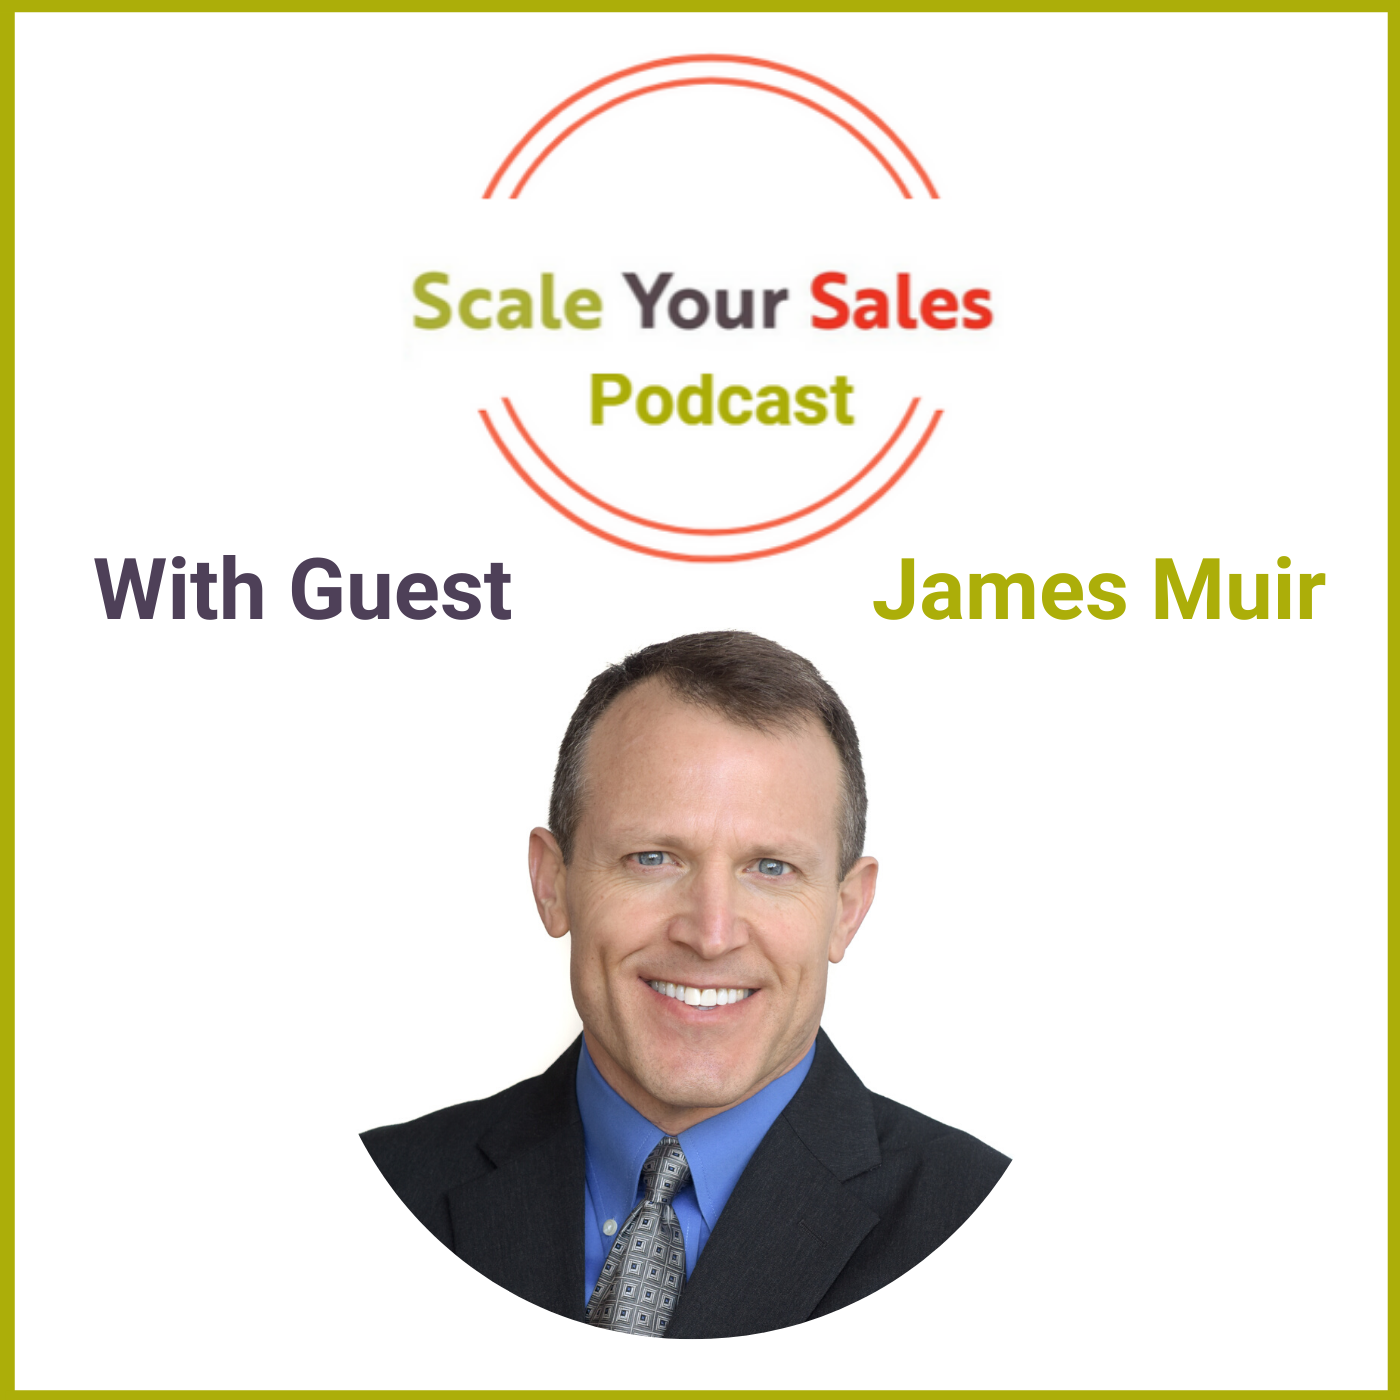 Episode 015 James Muir: Why 90% of Buyers Suggest the Next Logical Step?